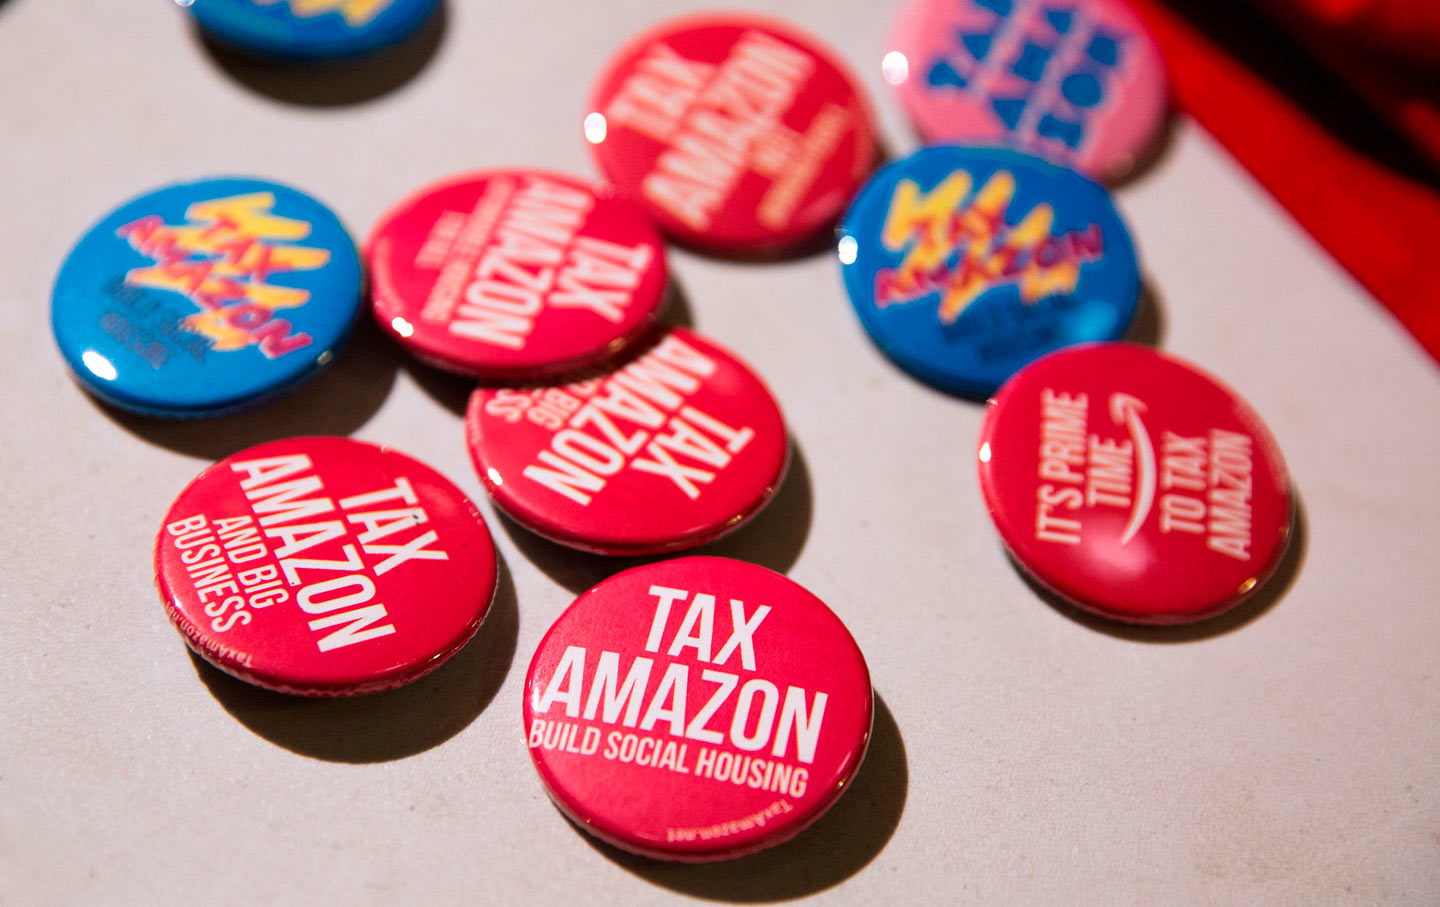 tax-amazon-seattle-kshama-sawant-gt-img